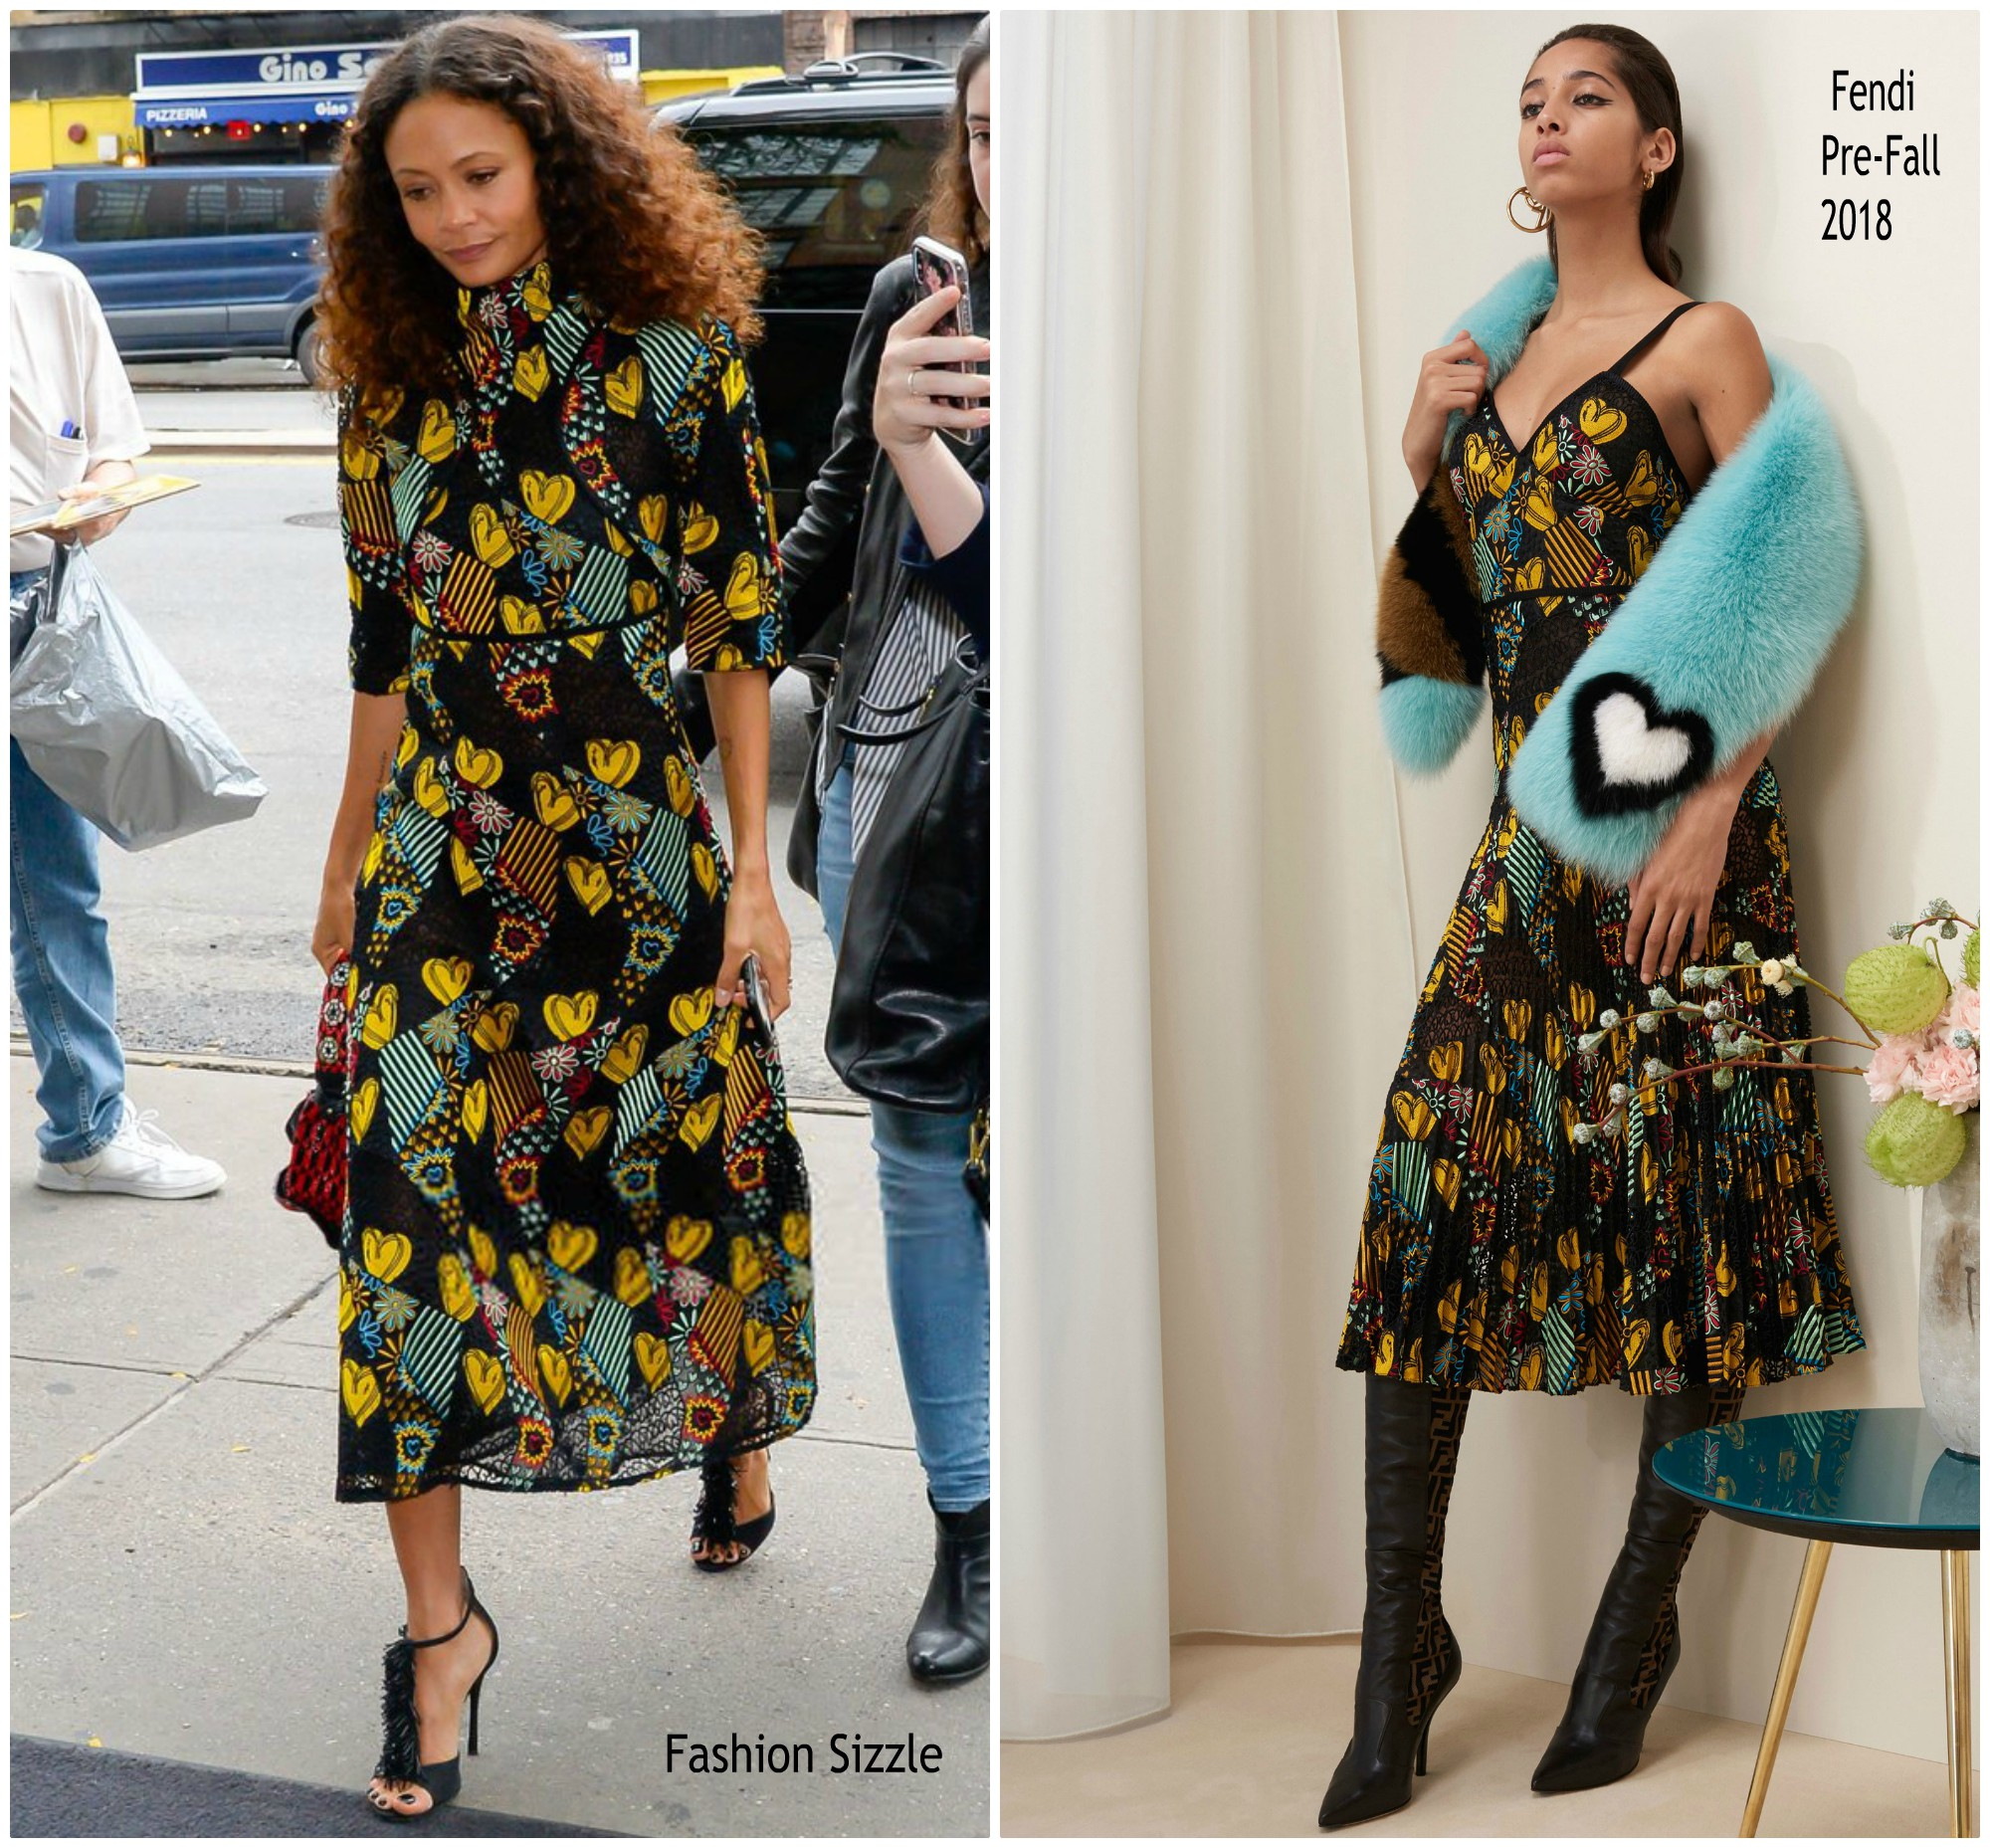 thandie-newton-in-fendi-build-series